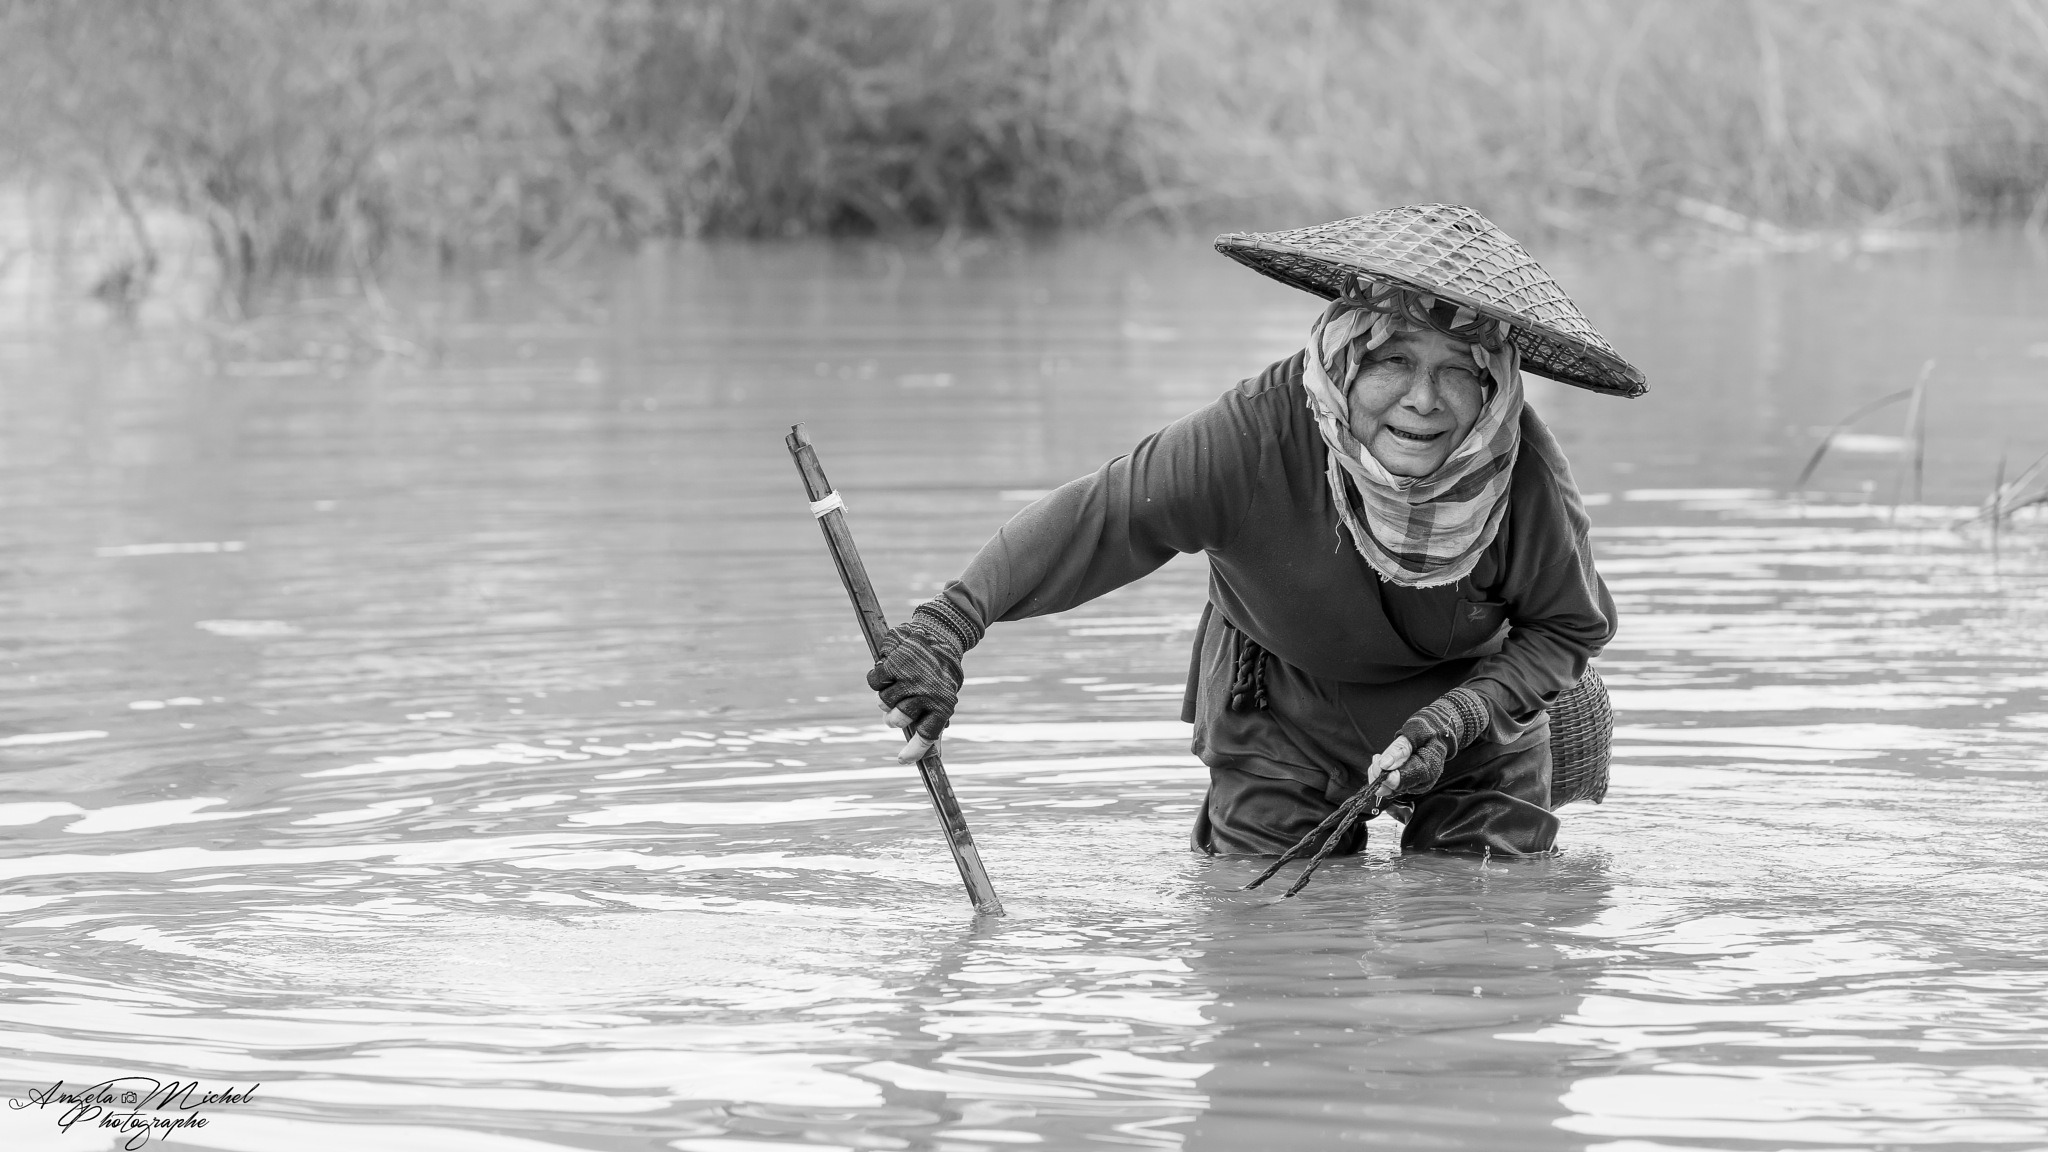 Fisherwoman by Angela.michel